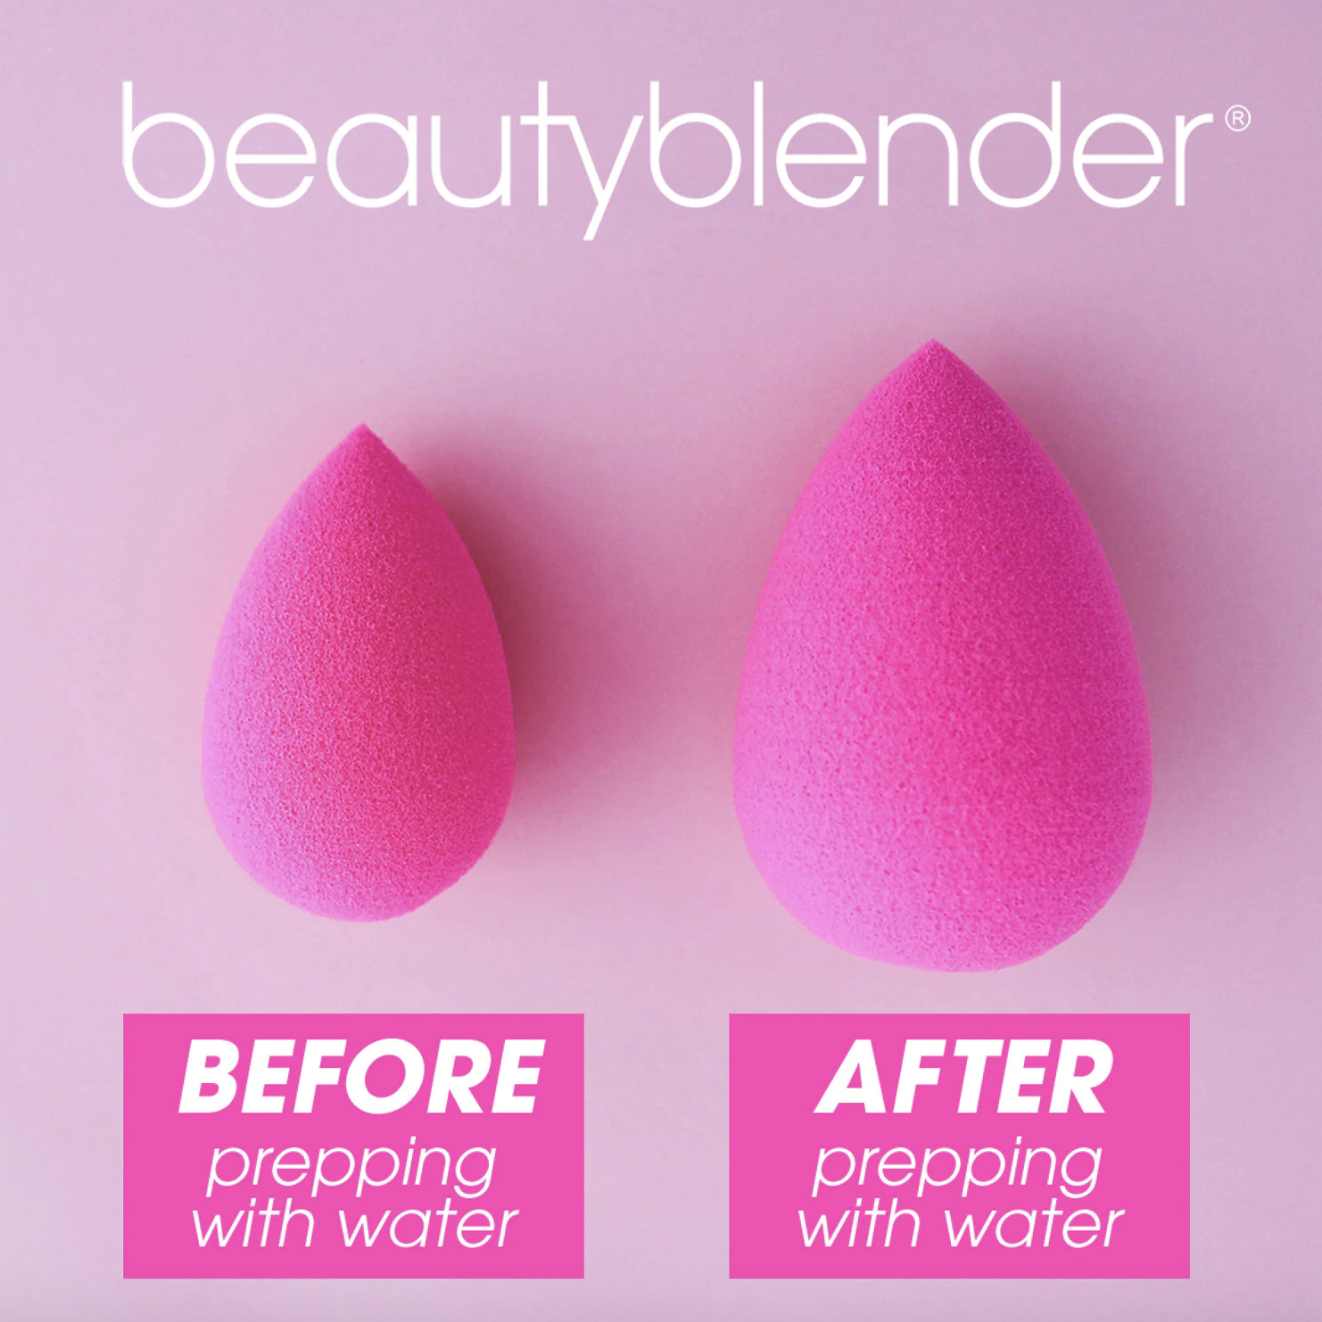 pink beautyblender without water on the left and with water on the right